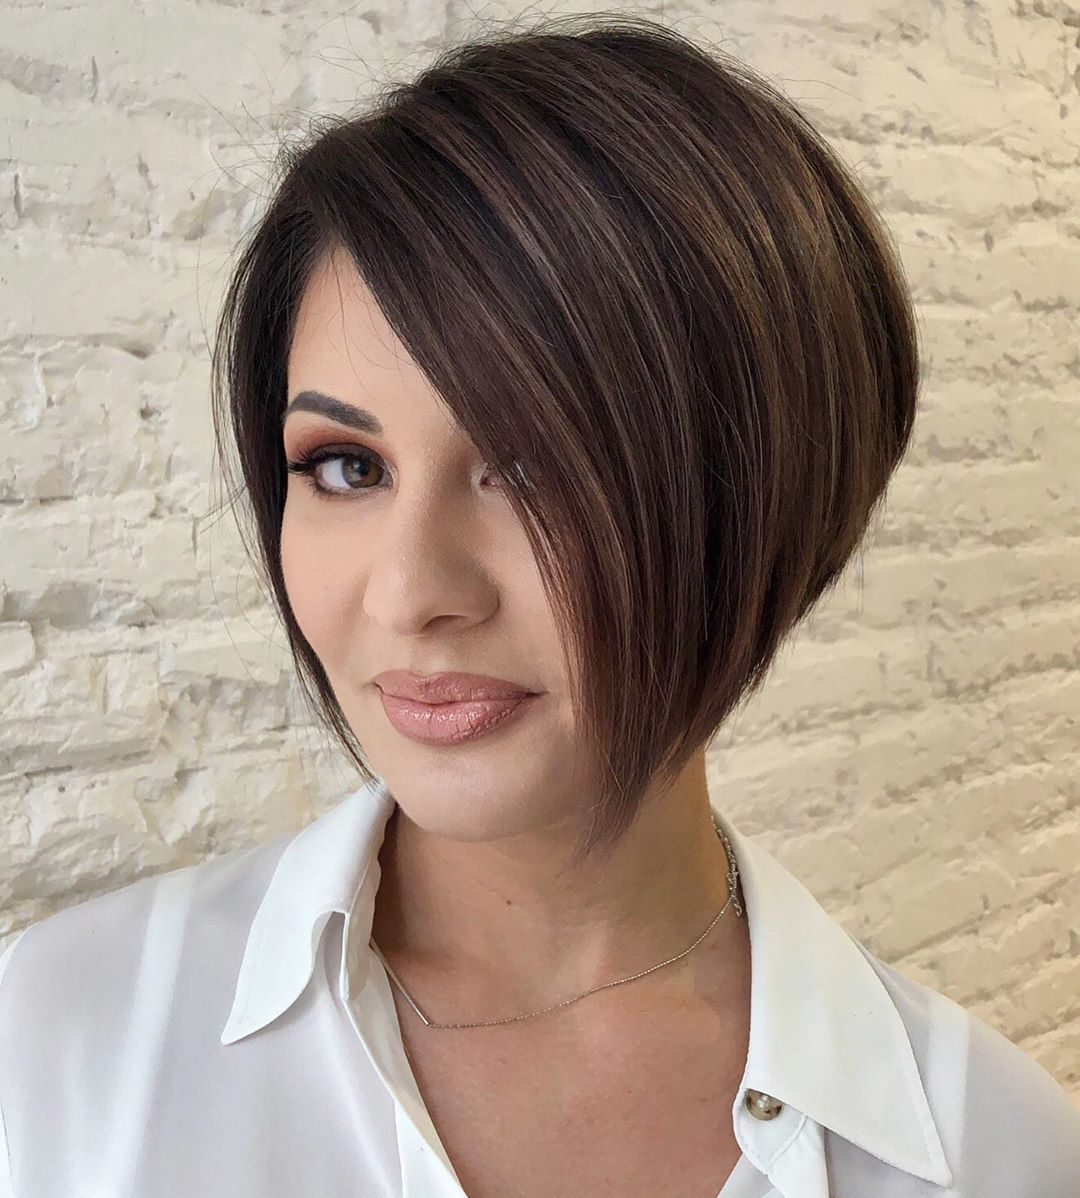 Short Straight Bob Hairstyle for Type 1A Hair